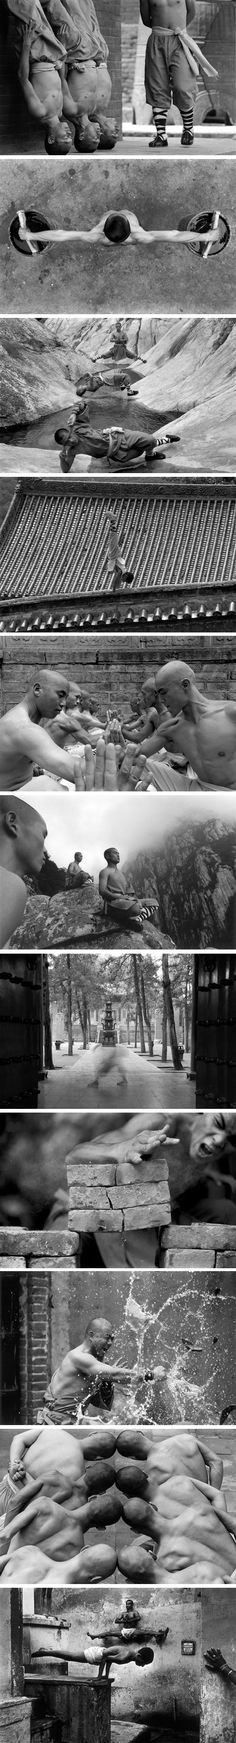 ♂ Chinese martial art Shaolin Kungfu Black & white photo from http://gudzowaty.com/